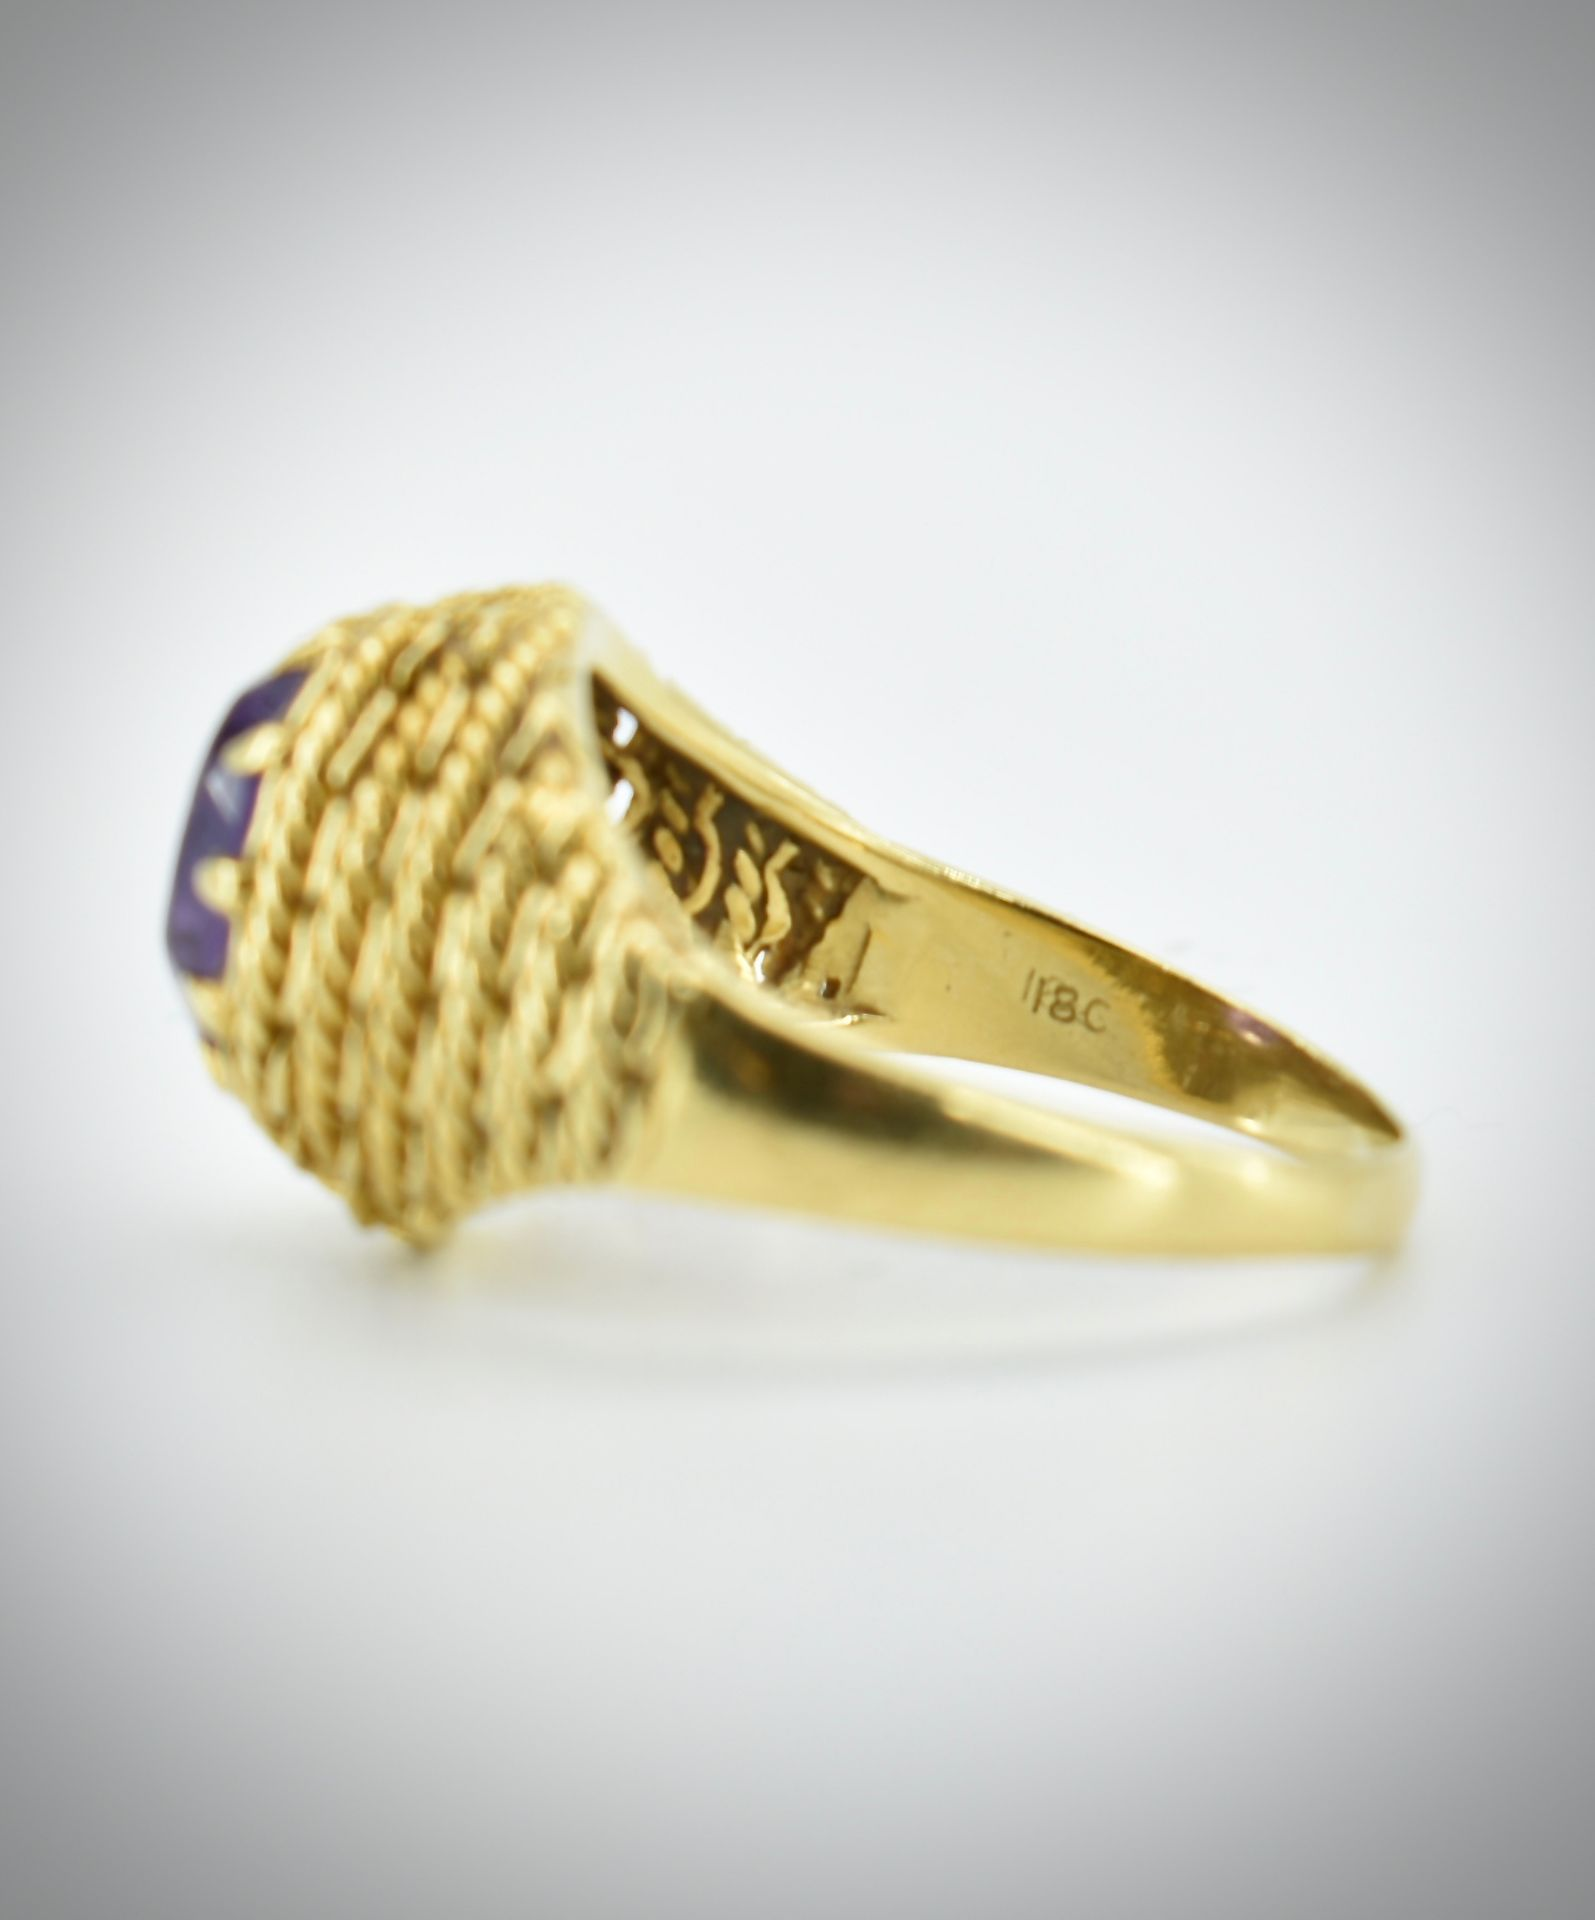 18ct Gold & Amethyst Ring - Image 3 of 7